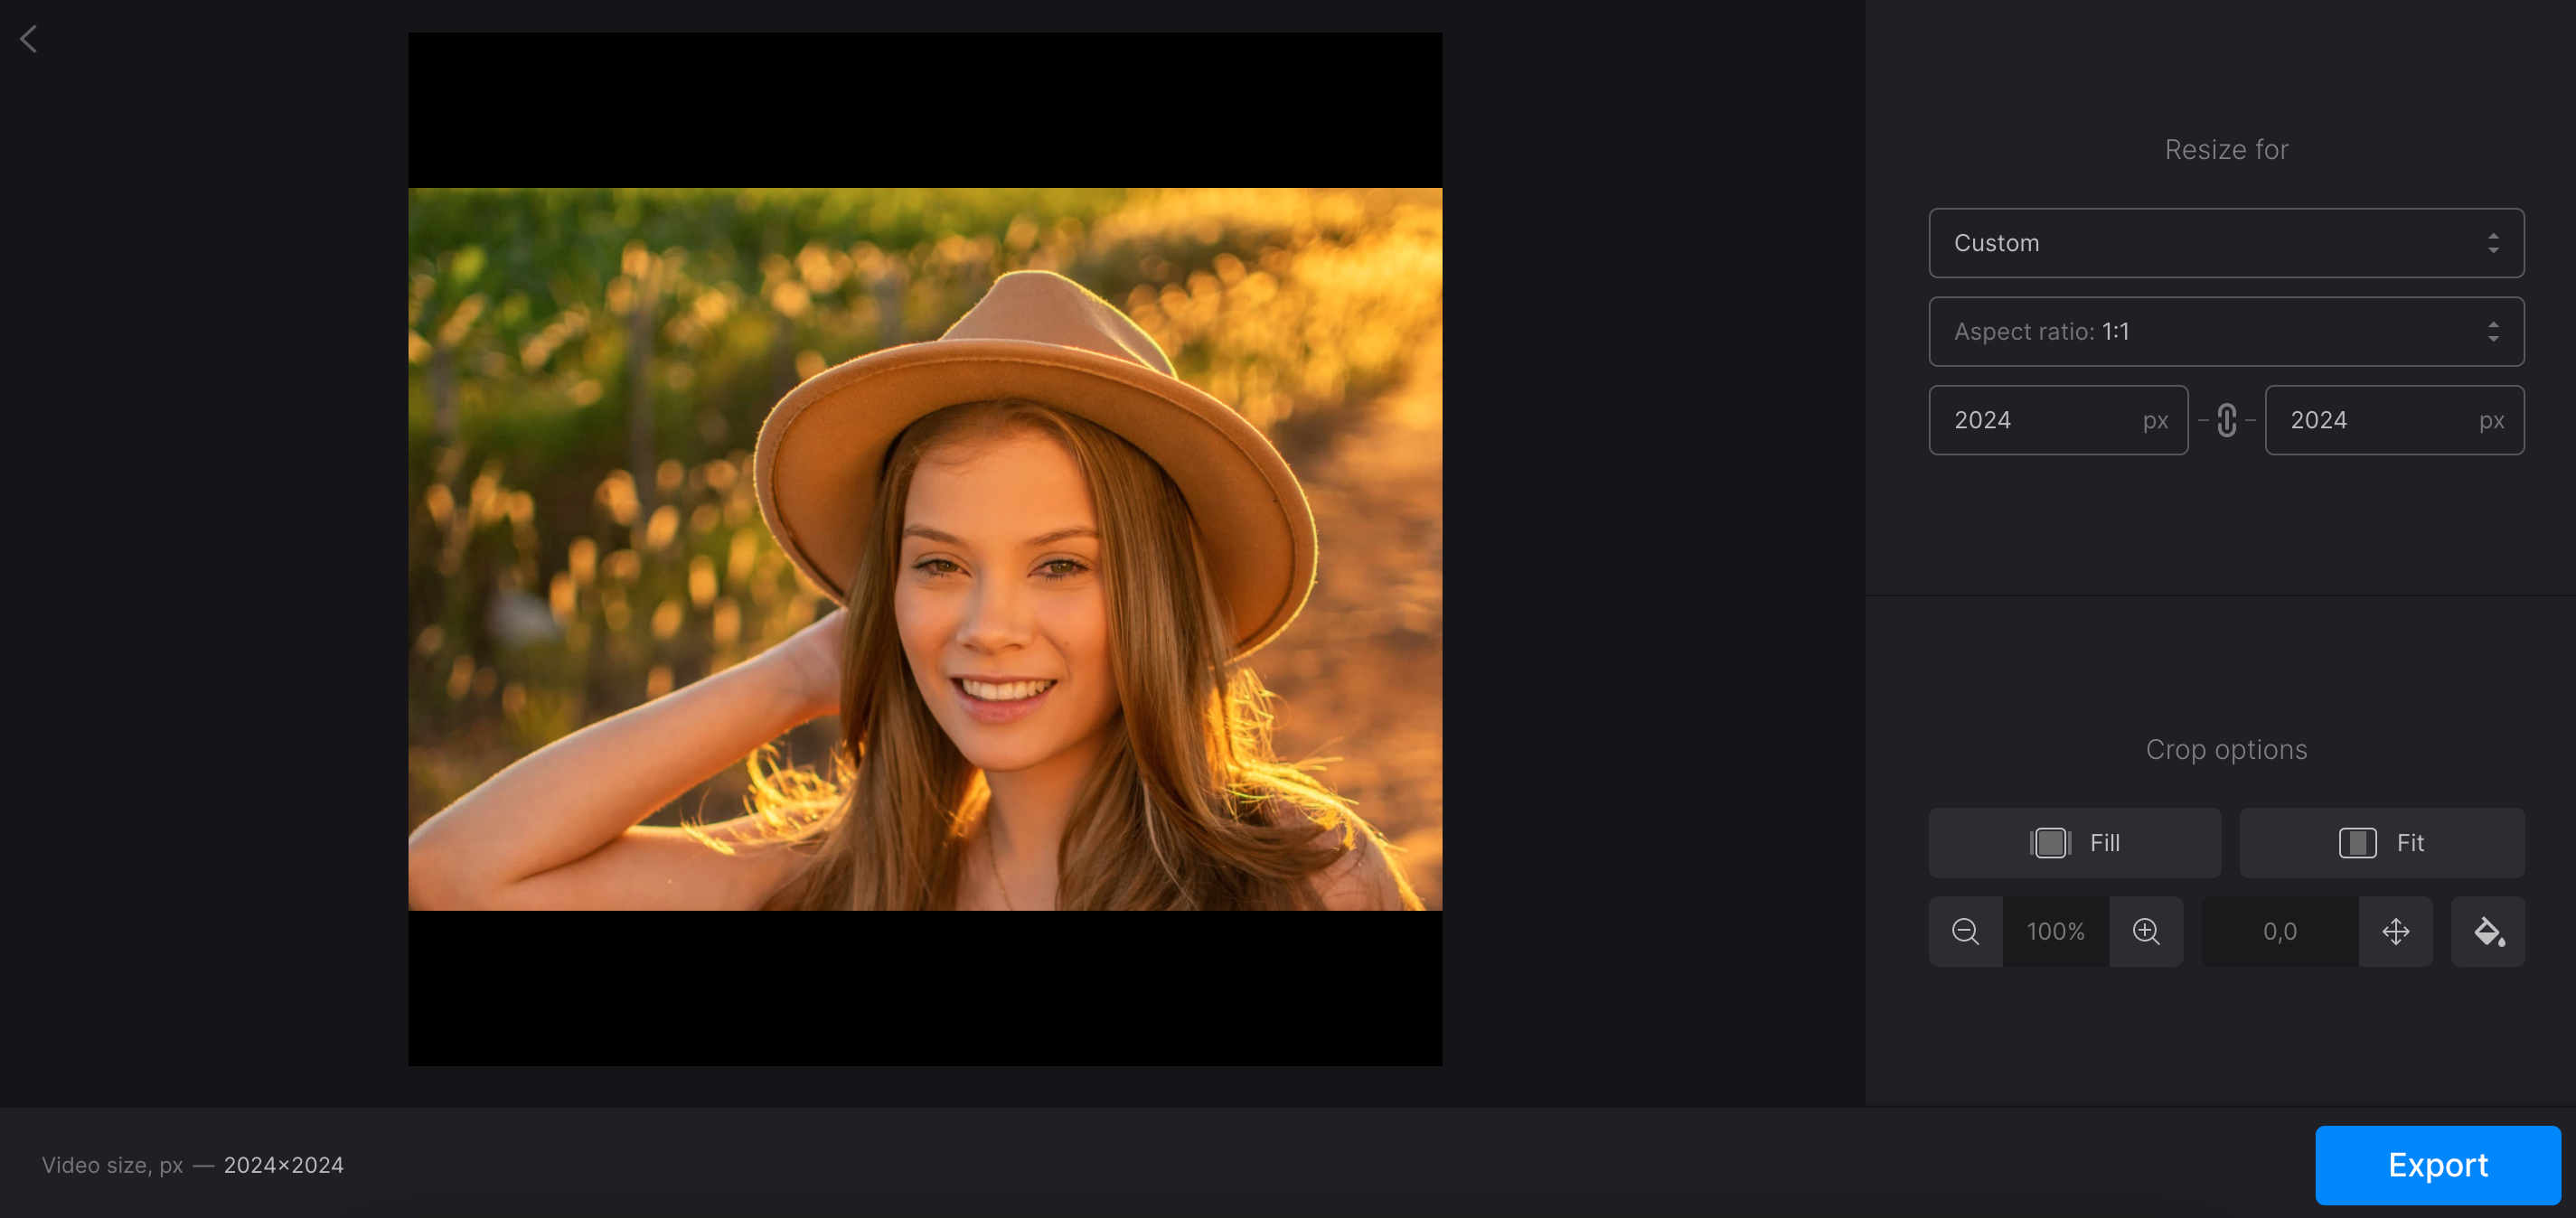 Change aspect ratio or resolution online with Clideo